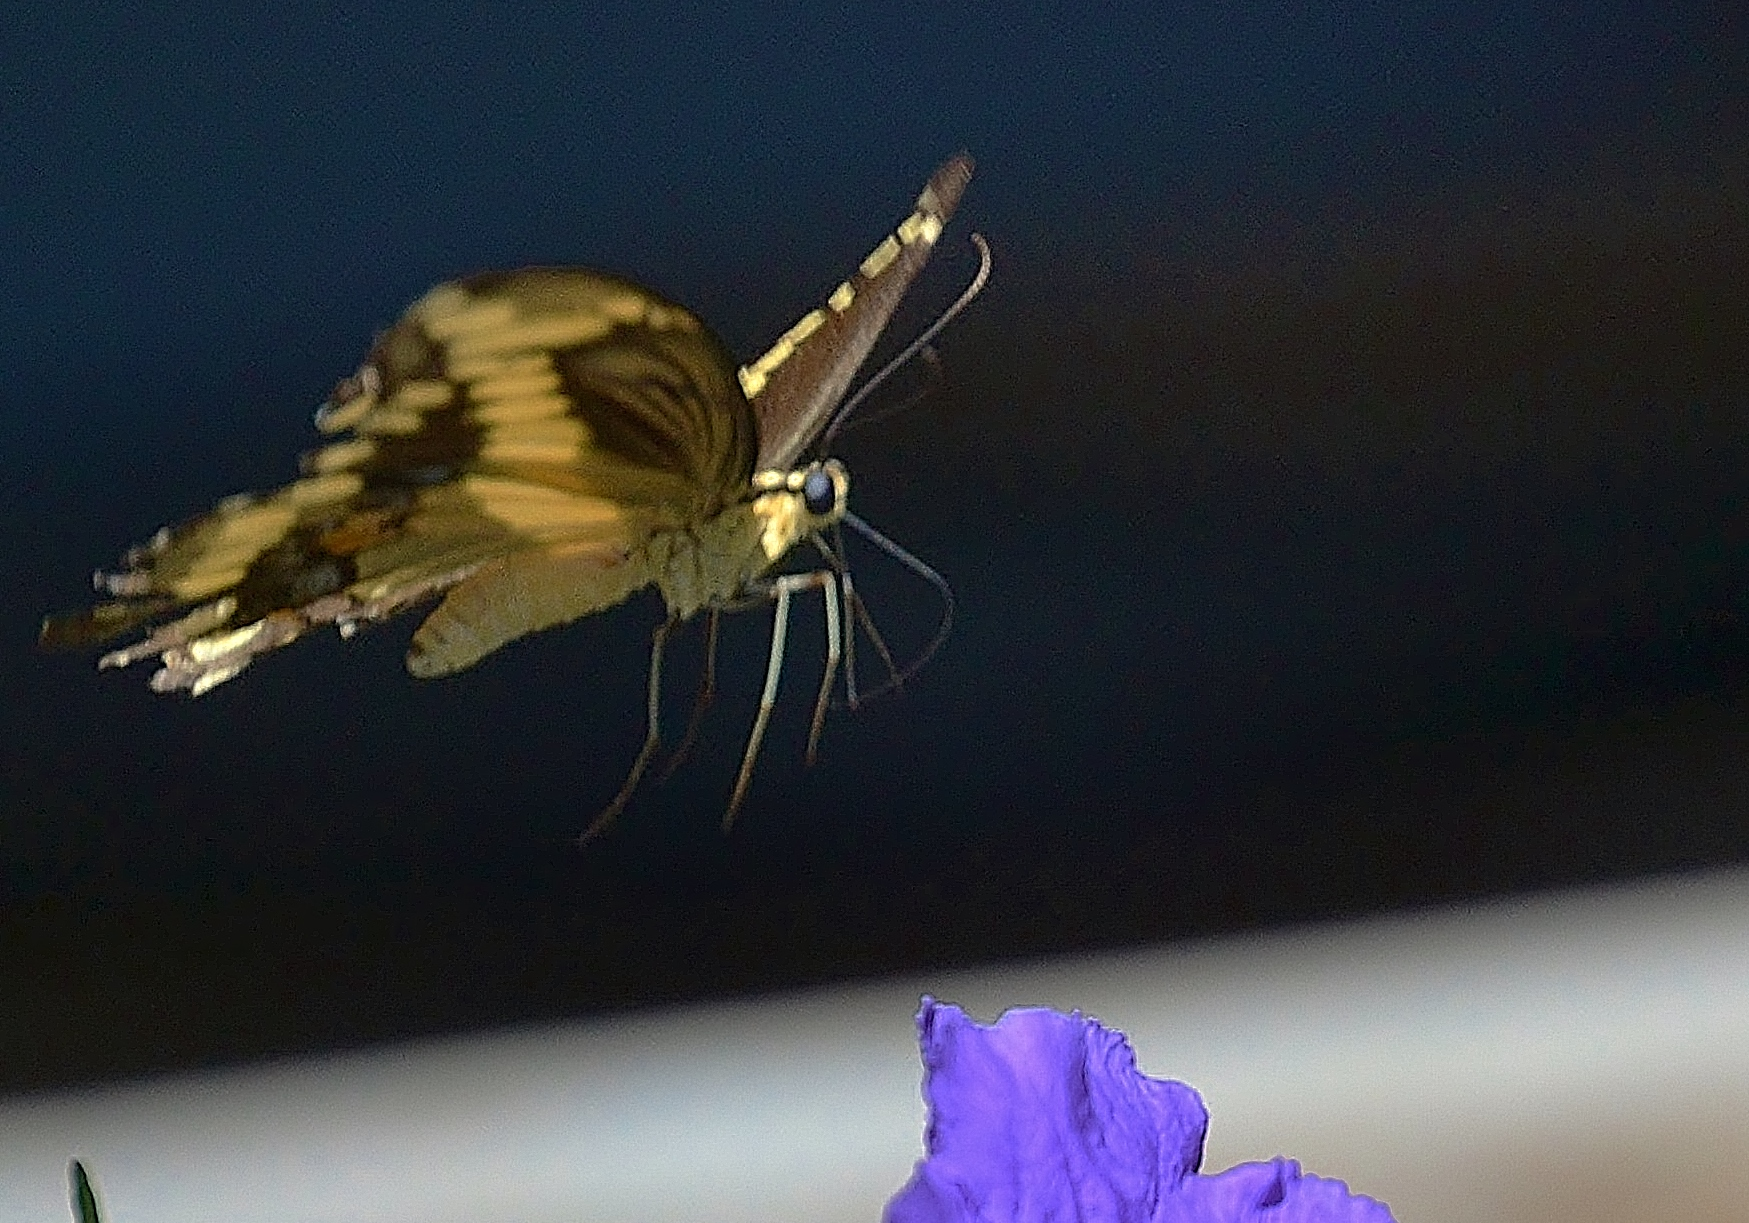 Butterfly over Petunias